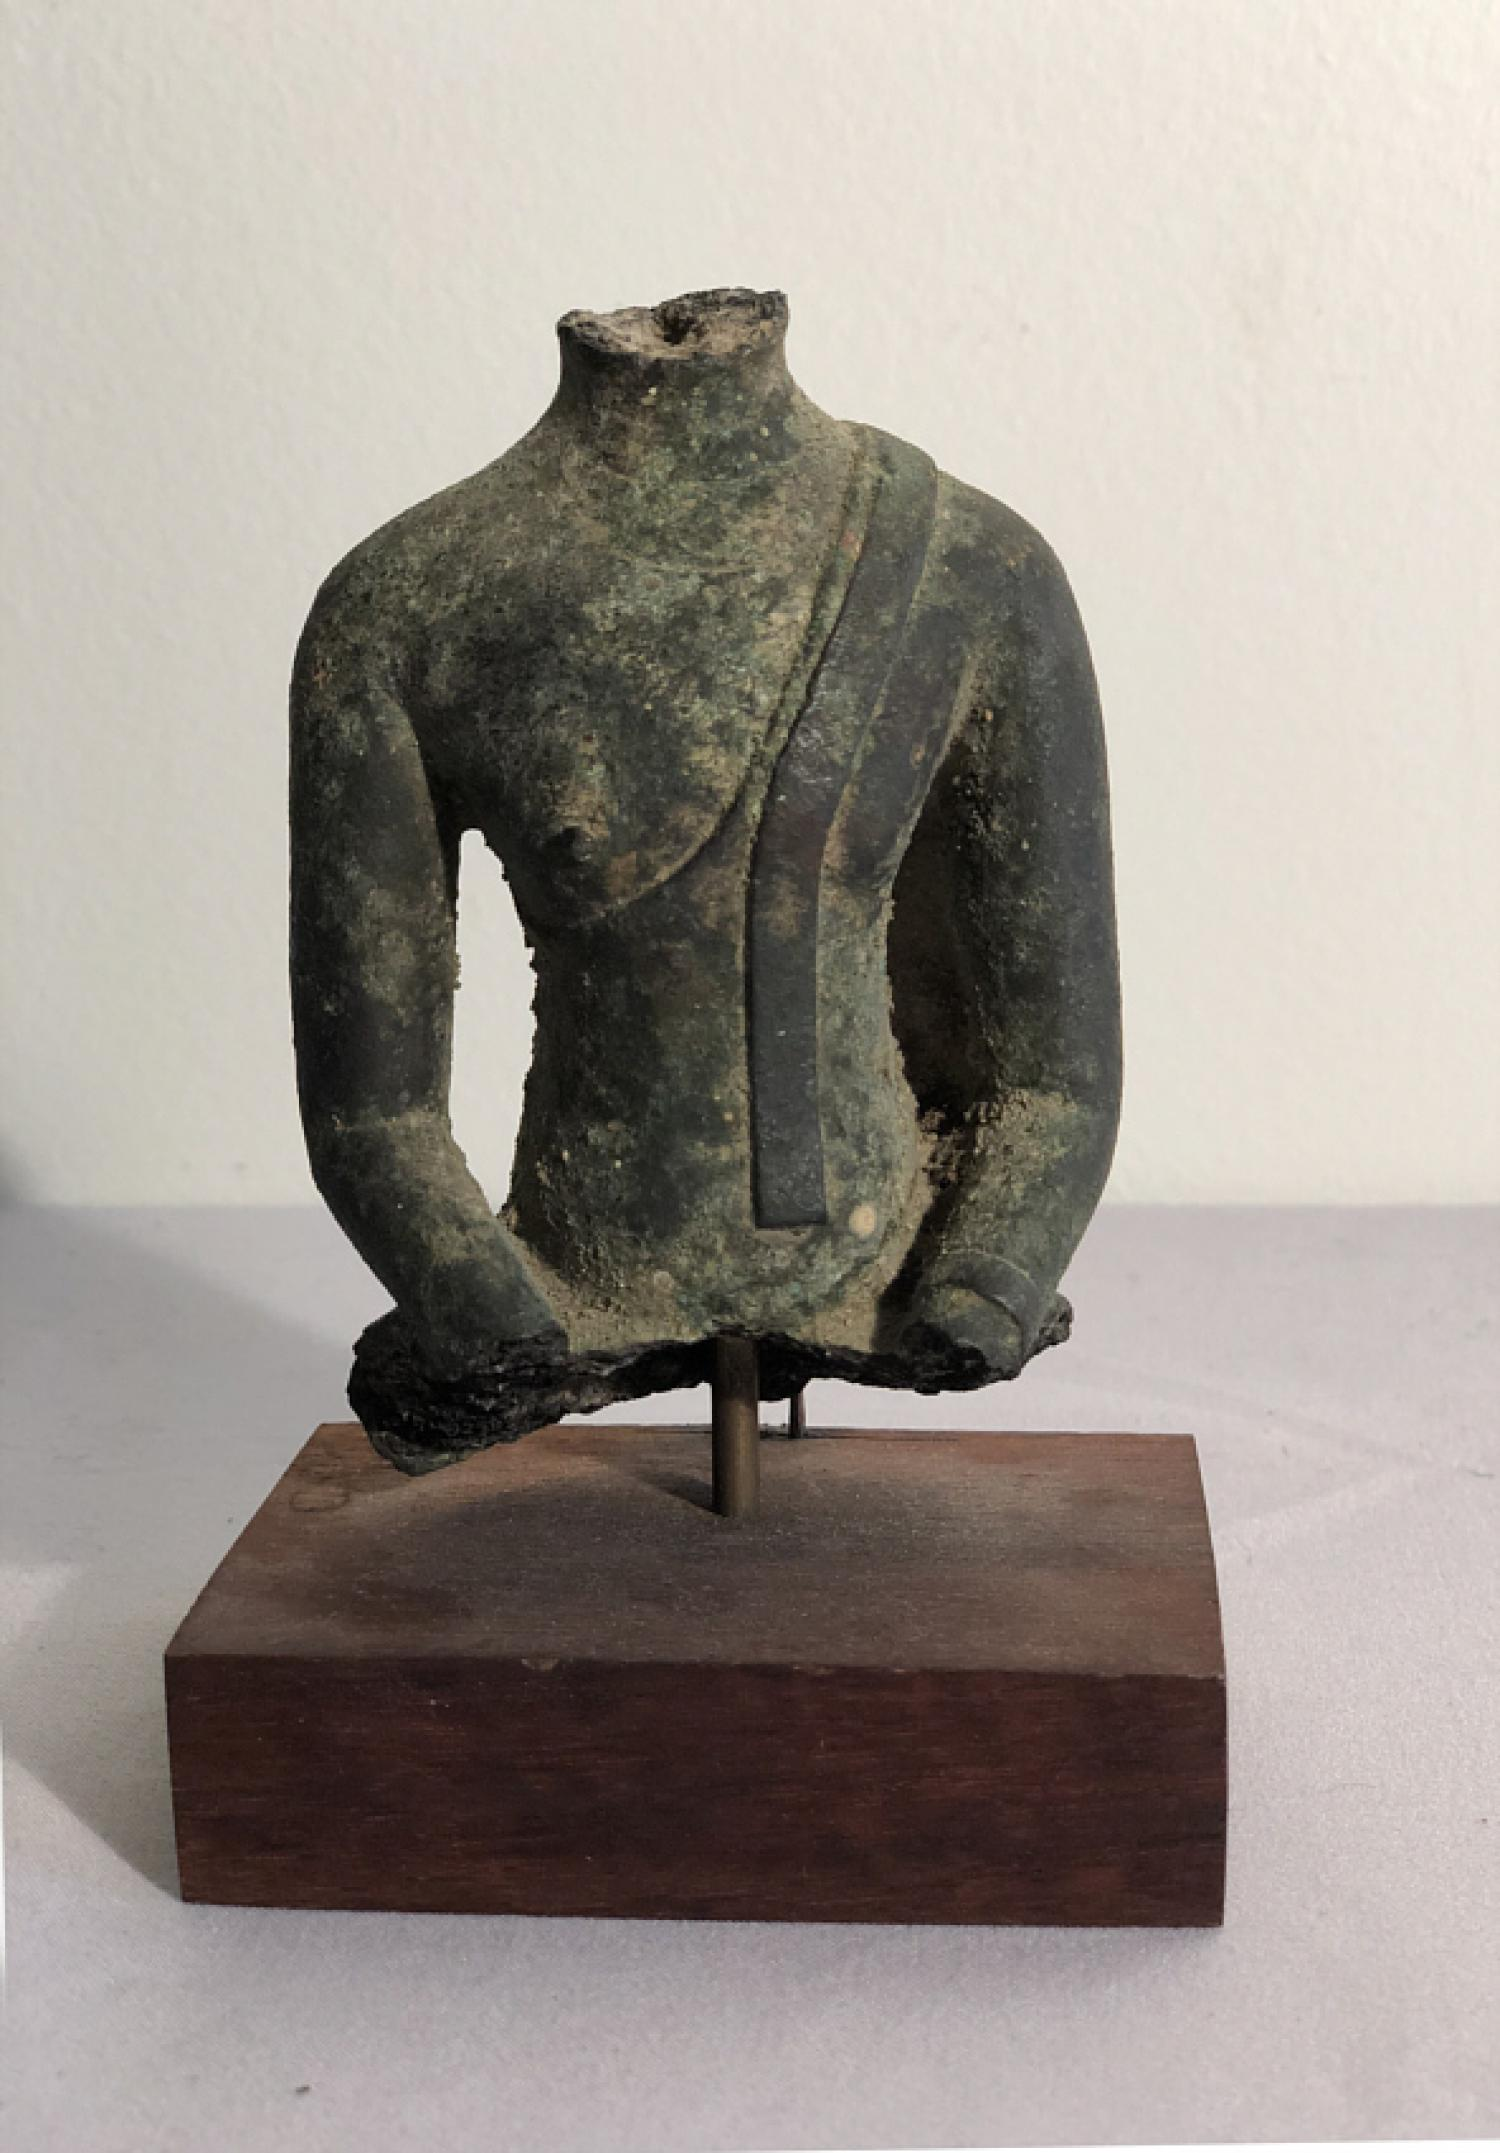 Thai bronze torso of Buddha 1335 to 1550